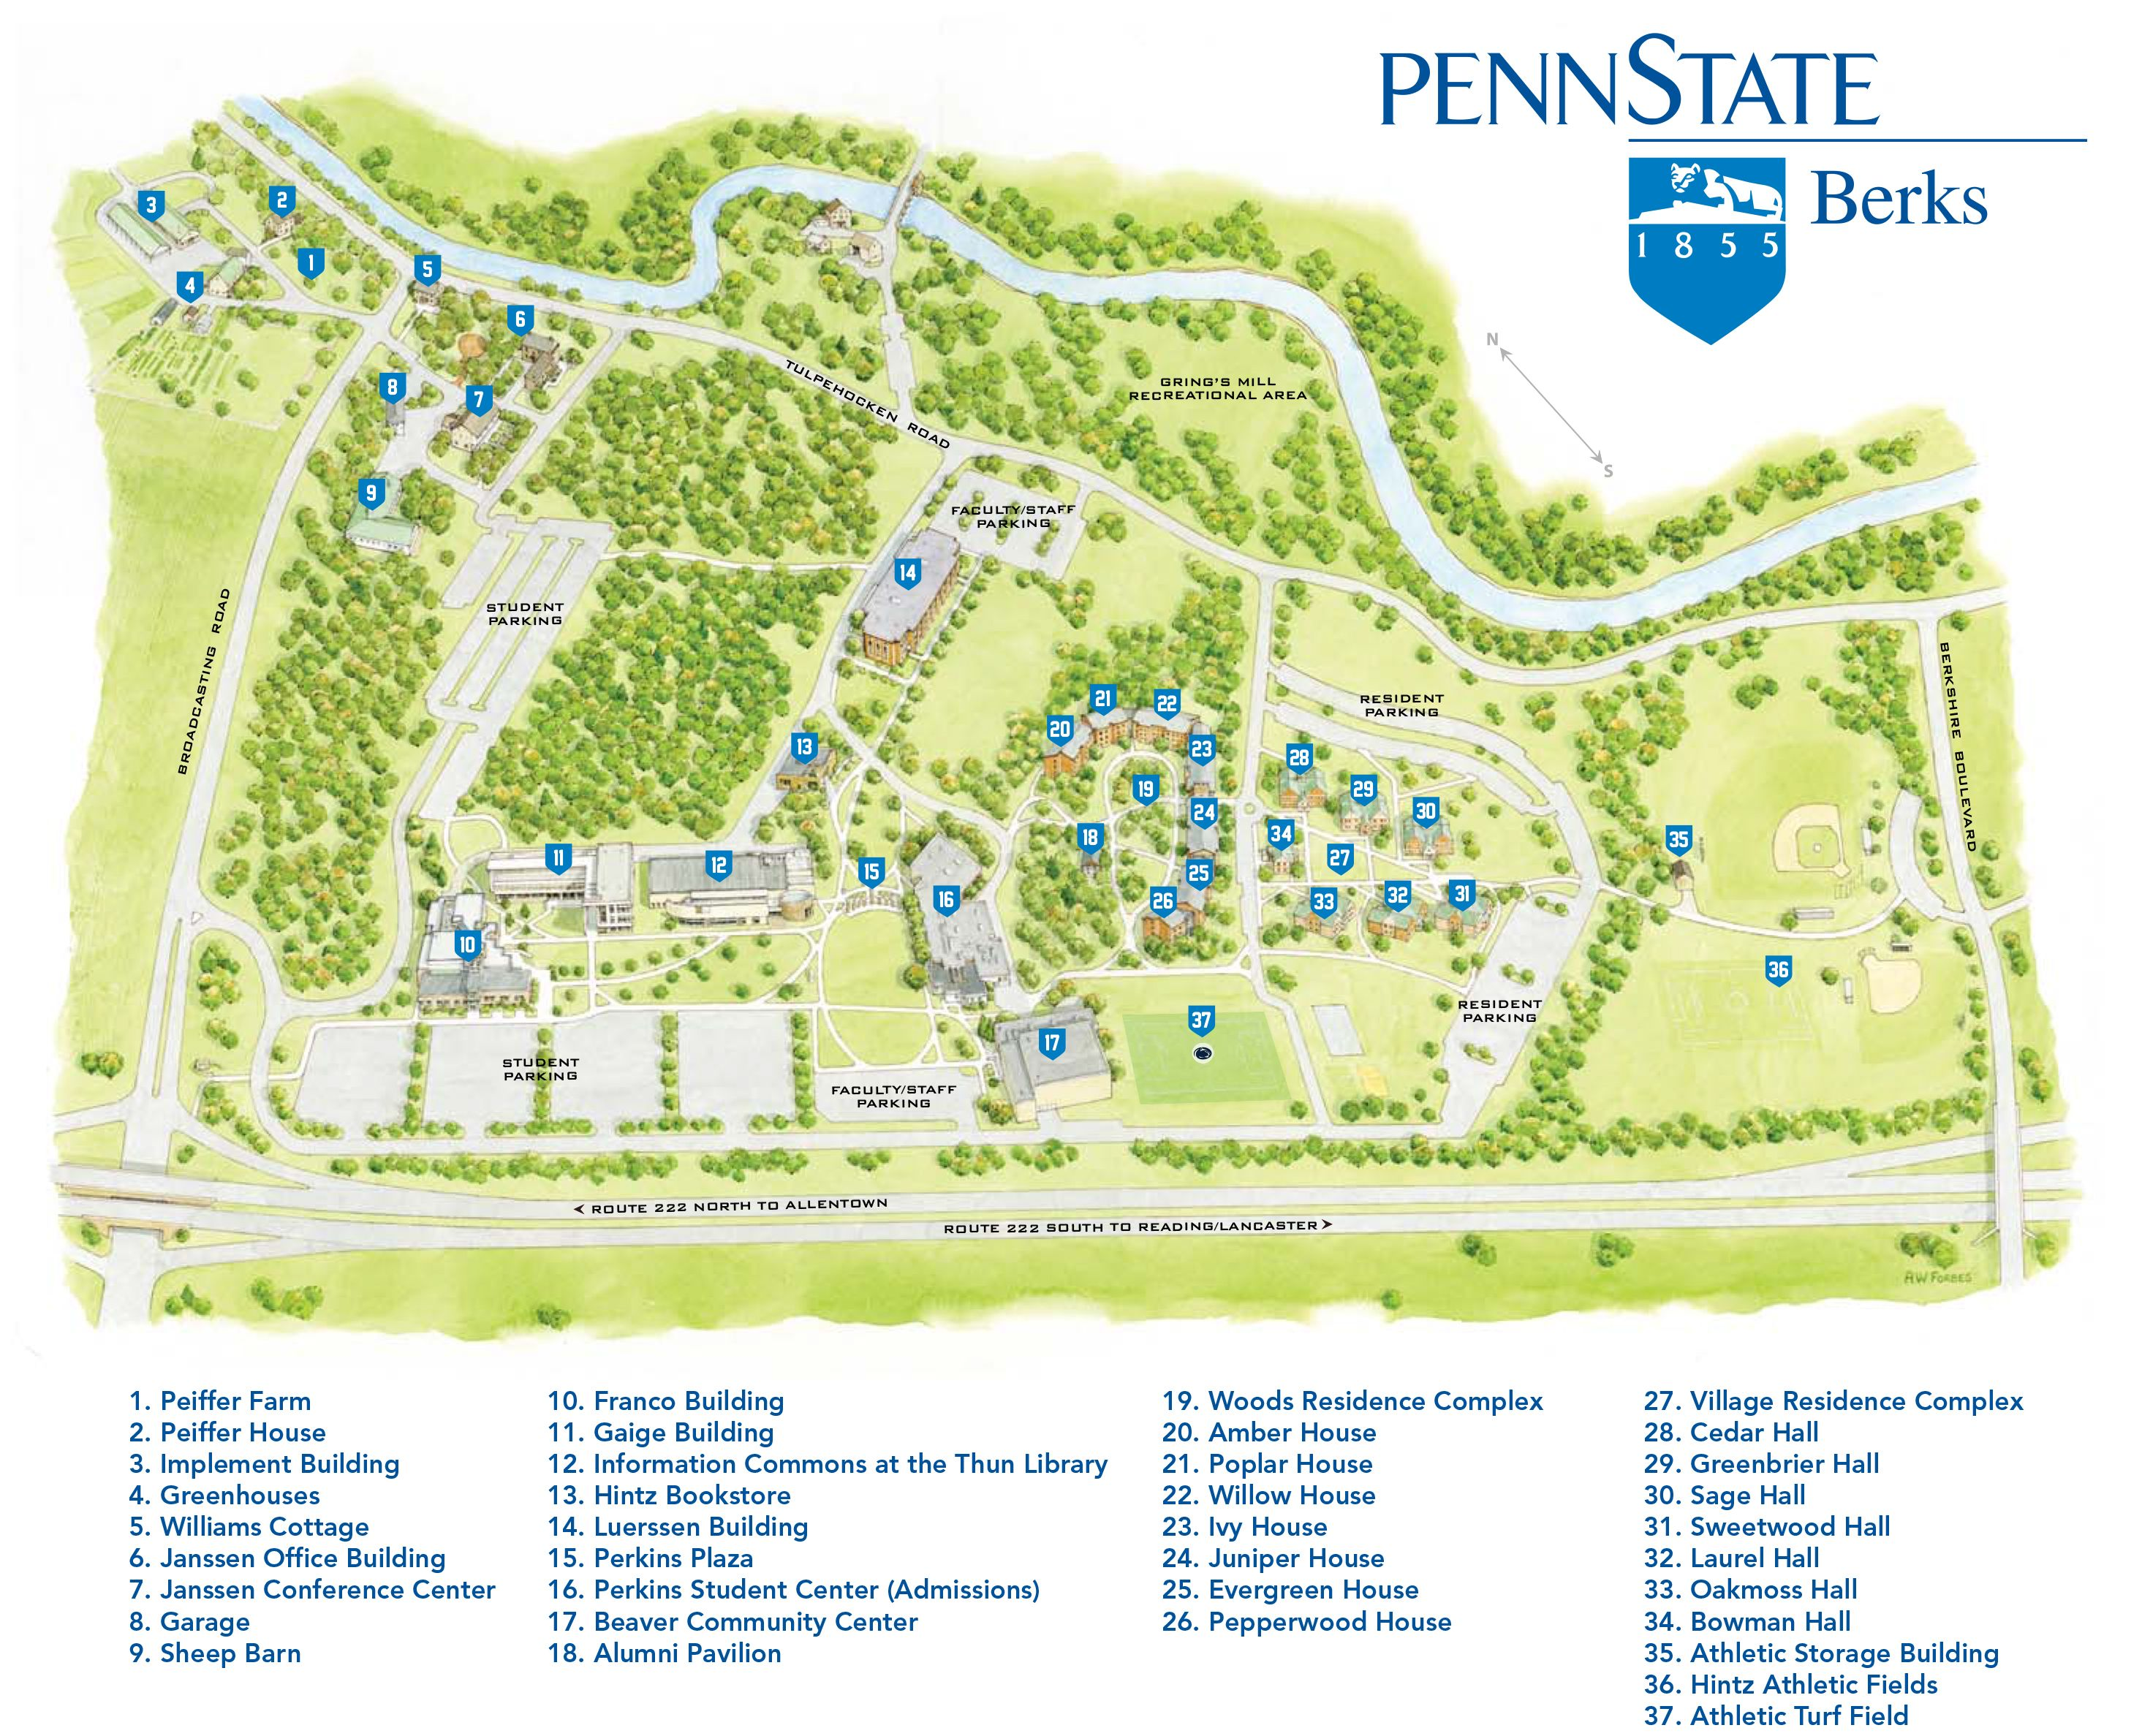 Pin by Penn State Berks on The Campus | Printable maps ...